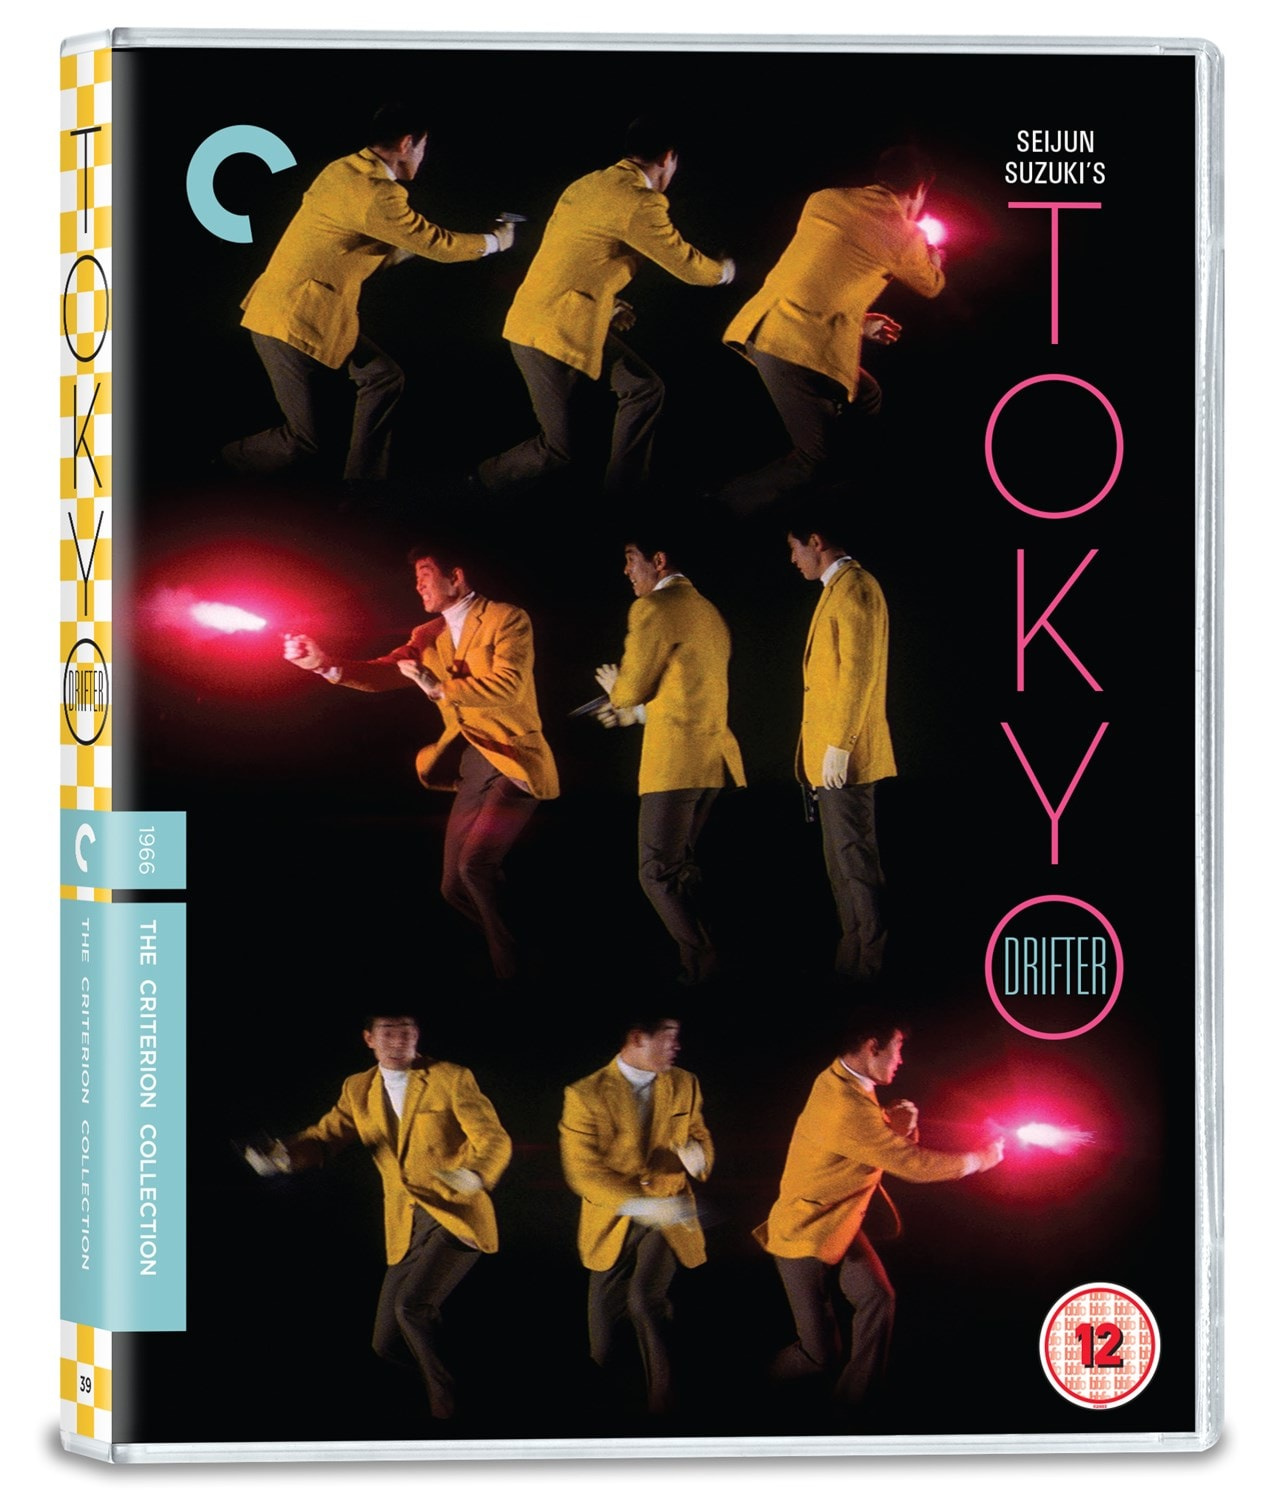 Tokyo Drifter - The Criterion Collection - 2